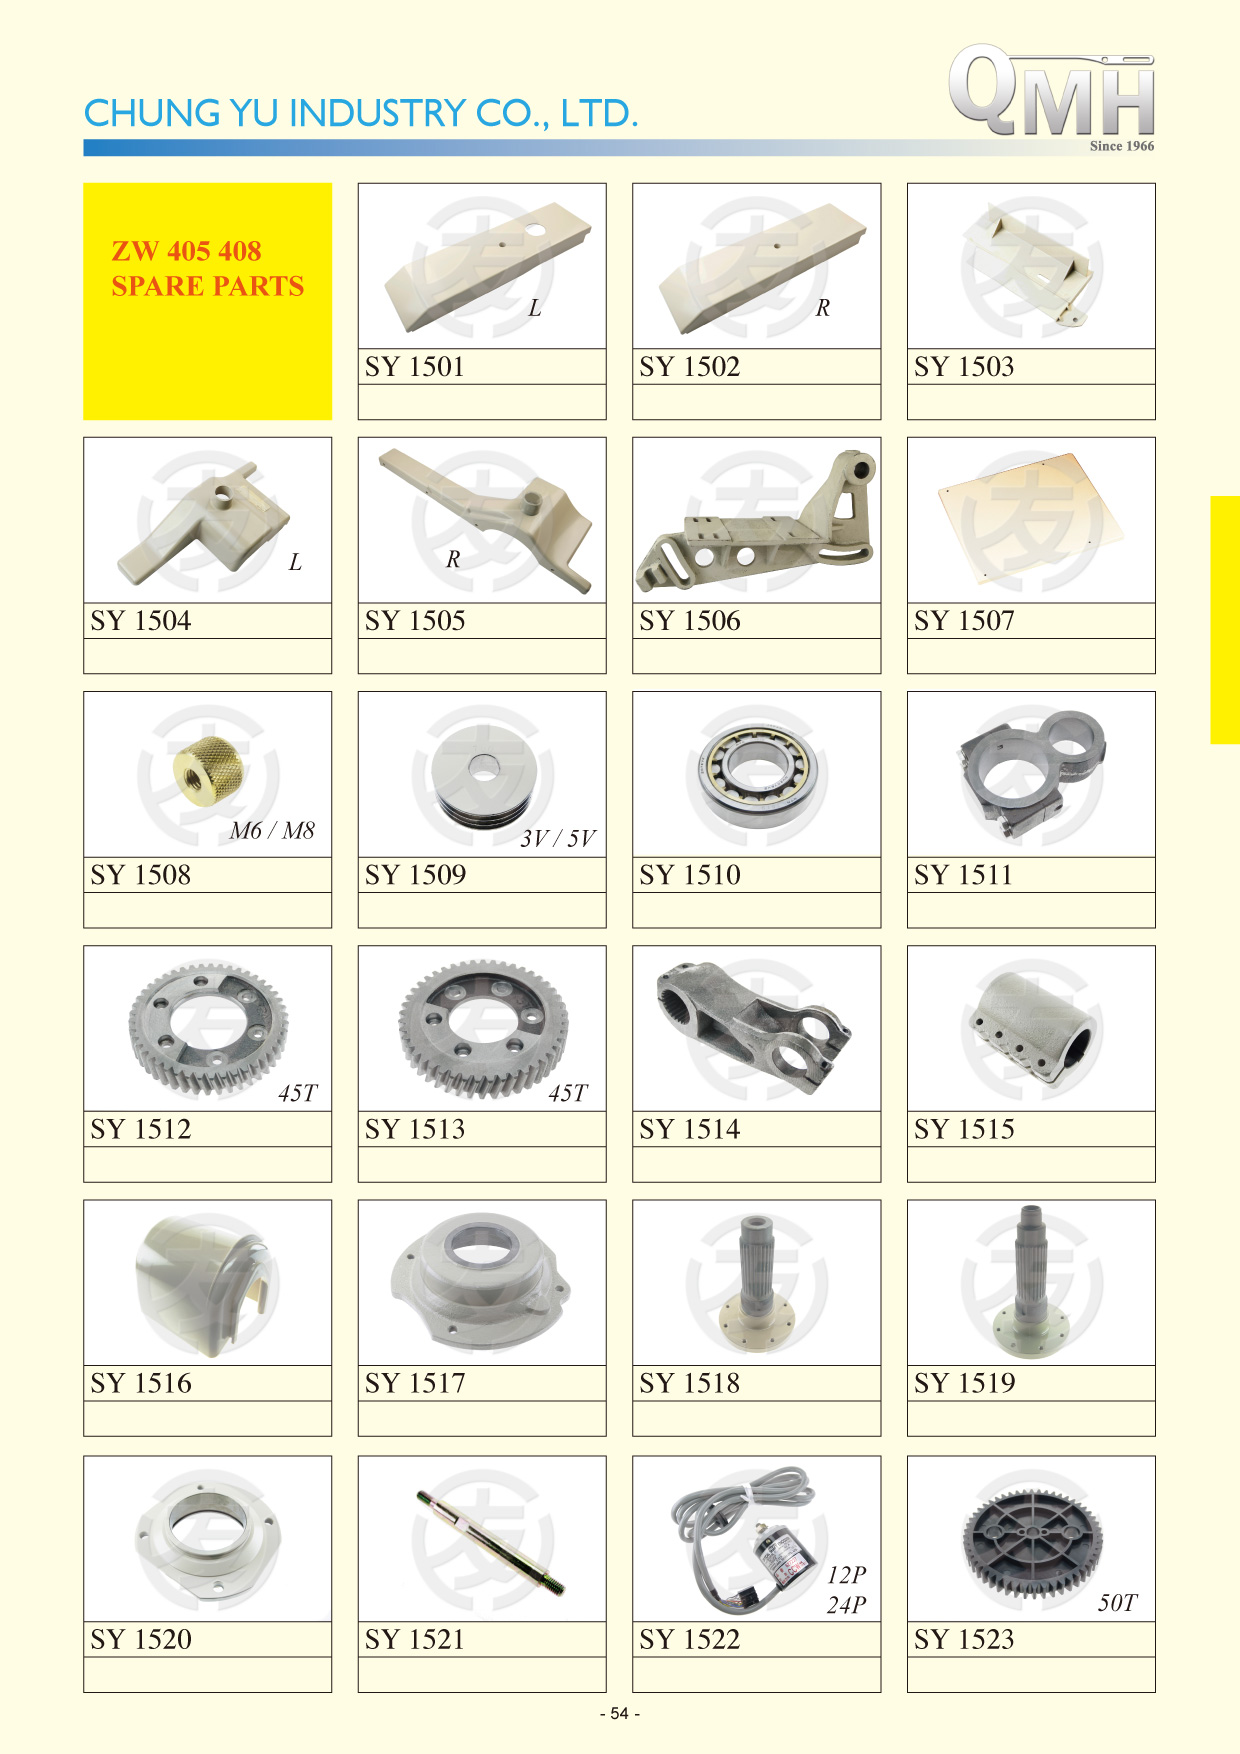 ZW 405 408 Spare Parts